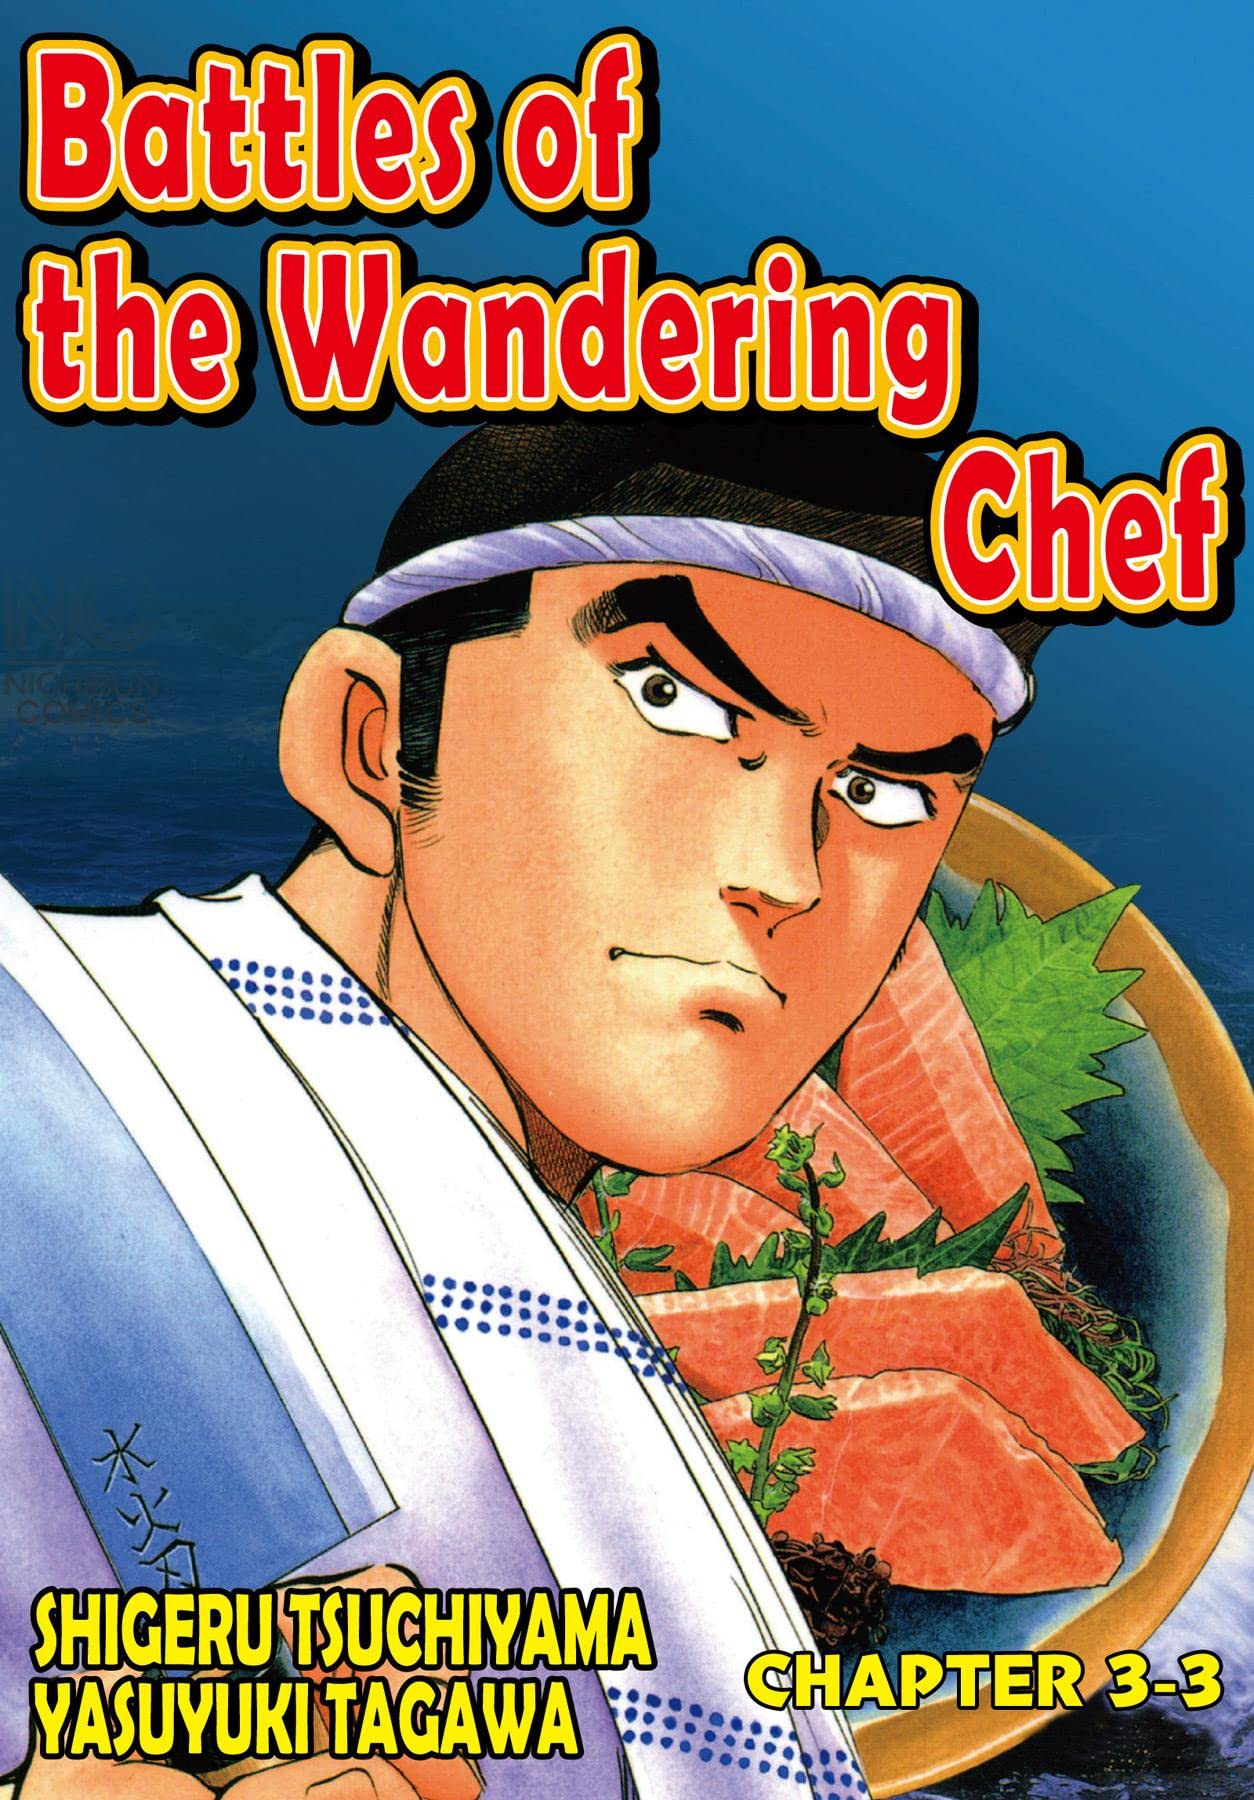 BATTLES OF THE WANDERING CHEF #18